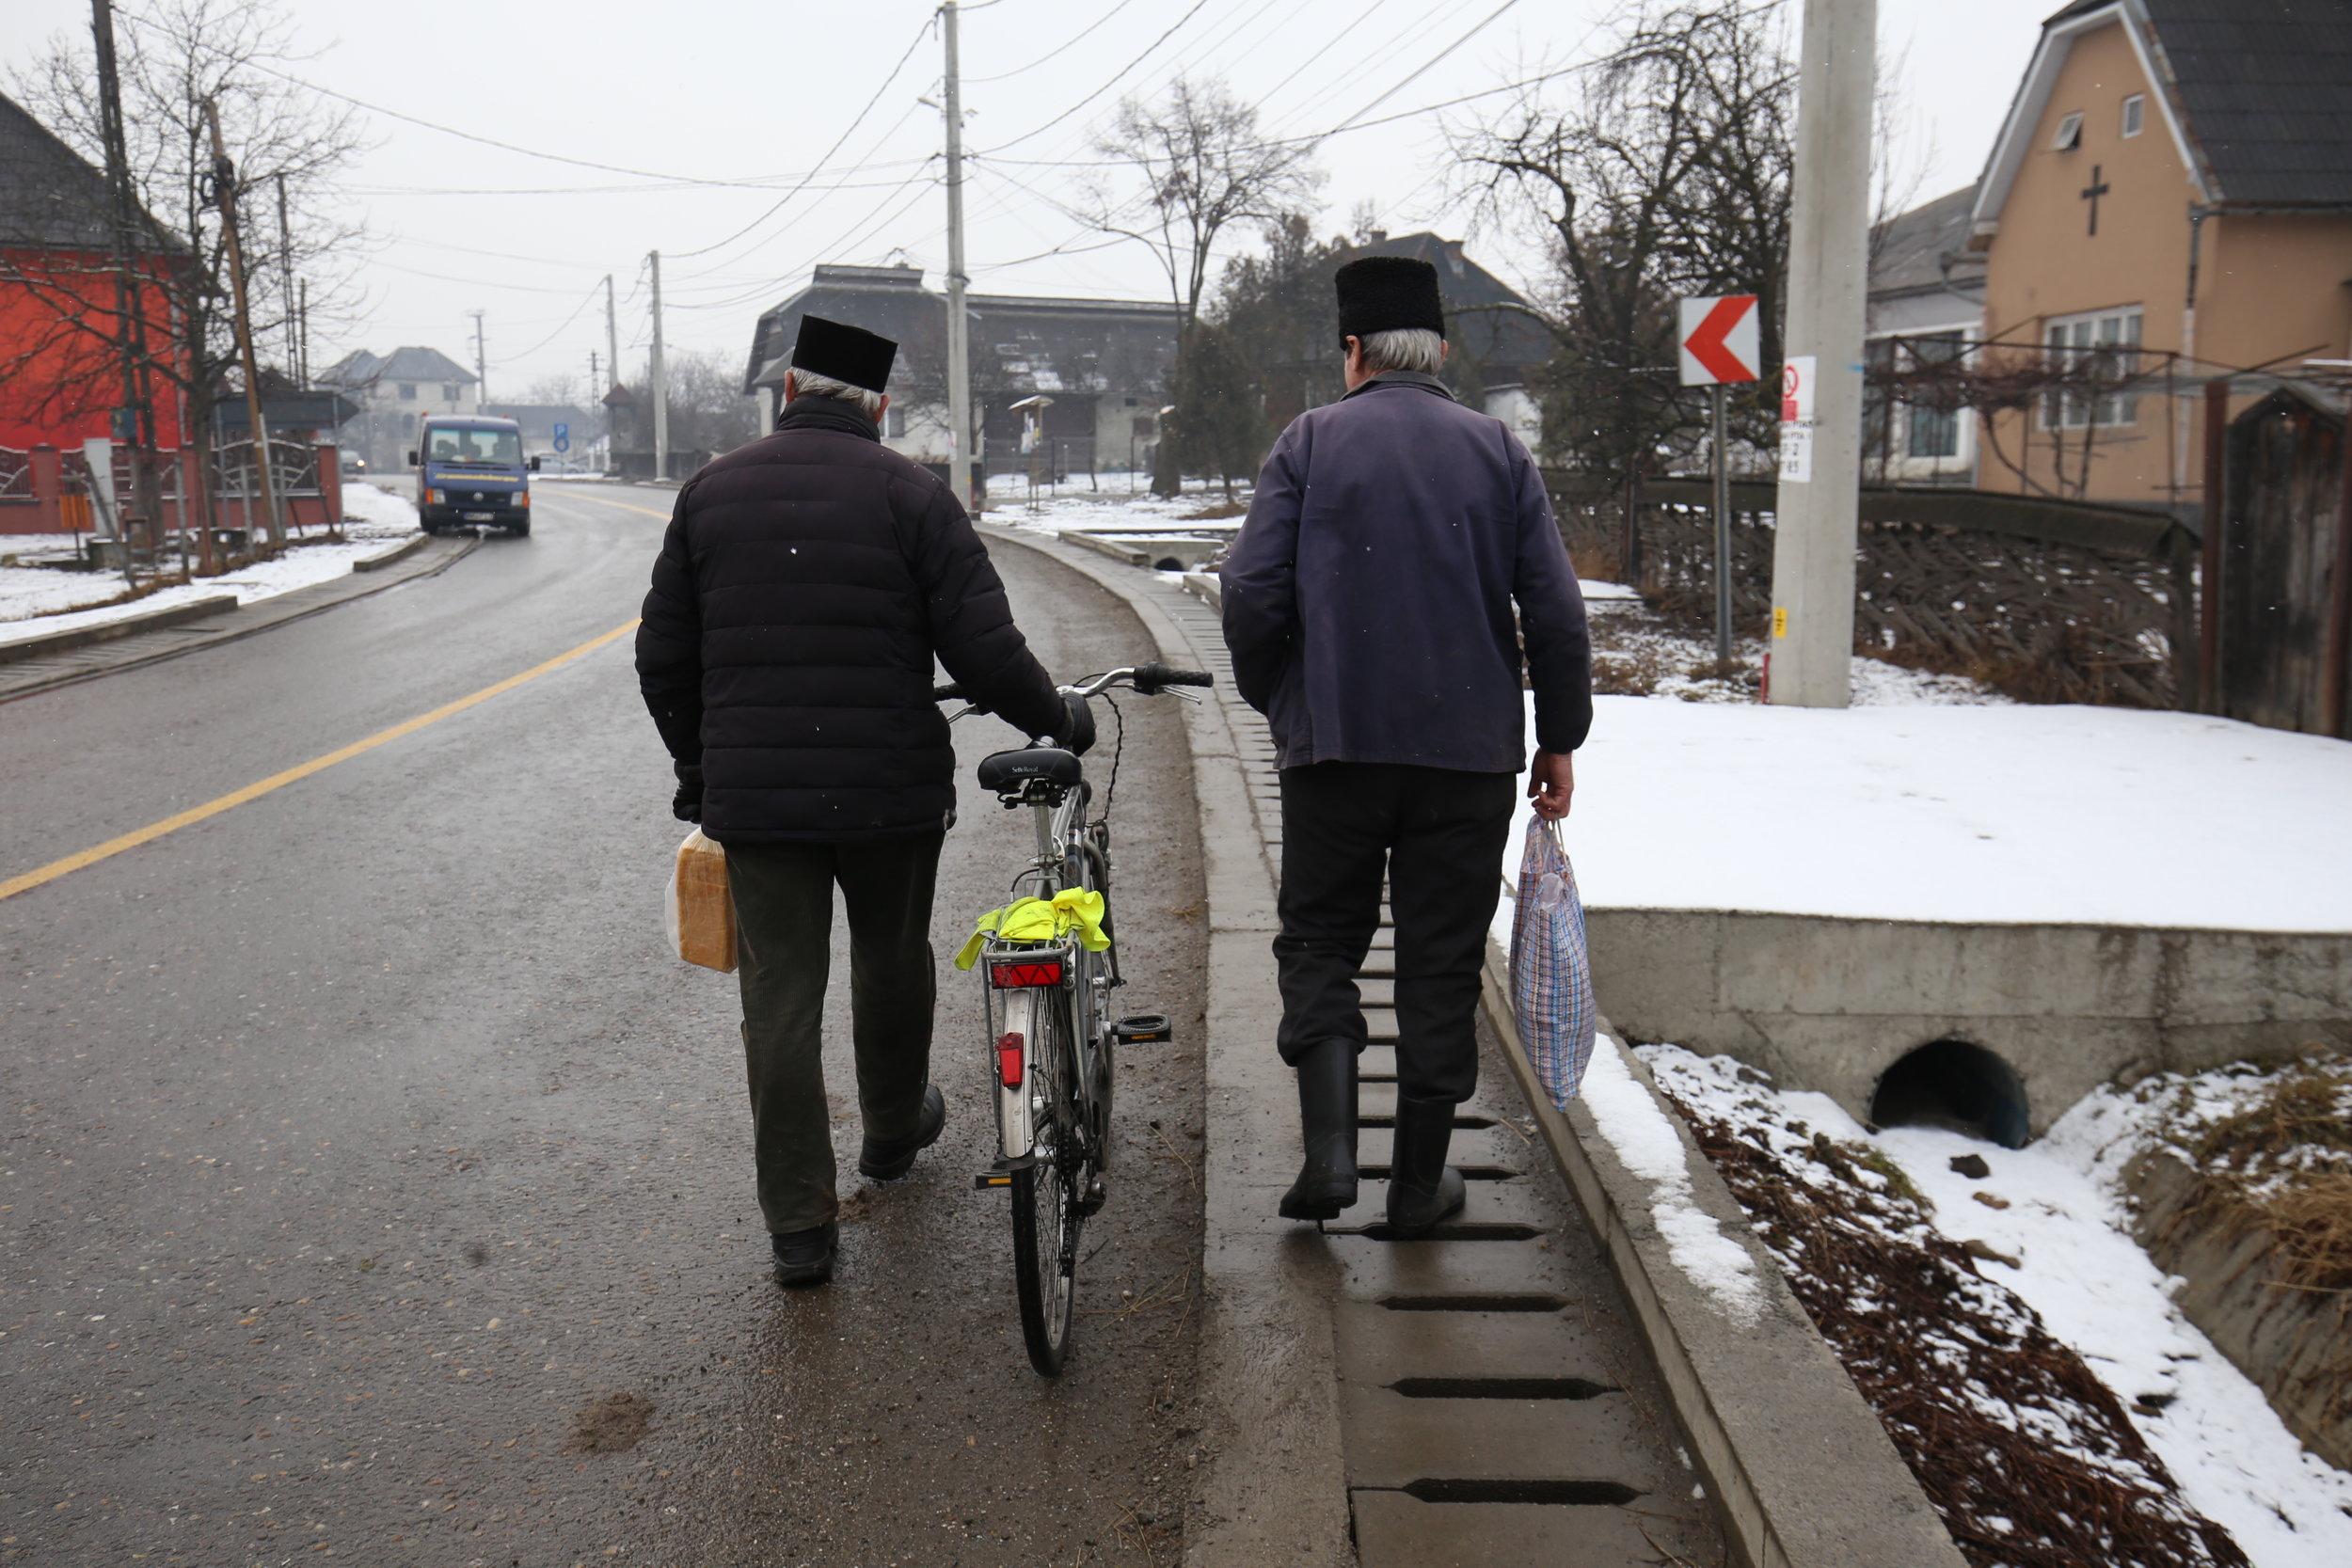 Two Romanian gentleman wandering down the village road - with fuzzy hats on.